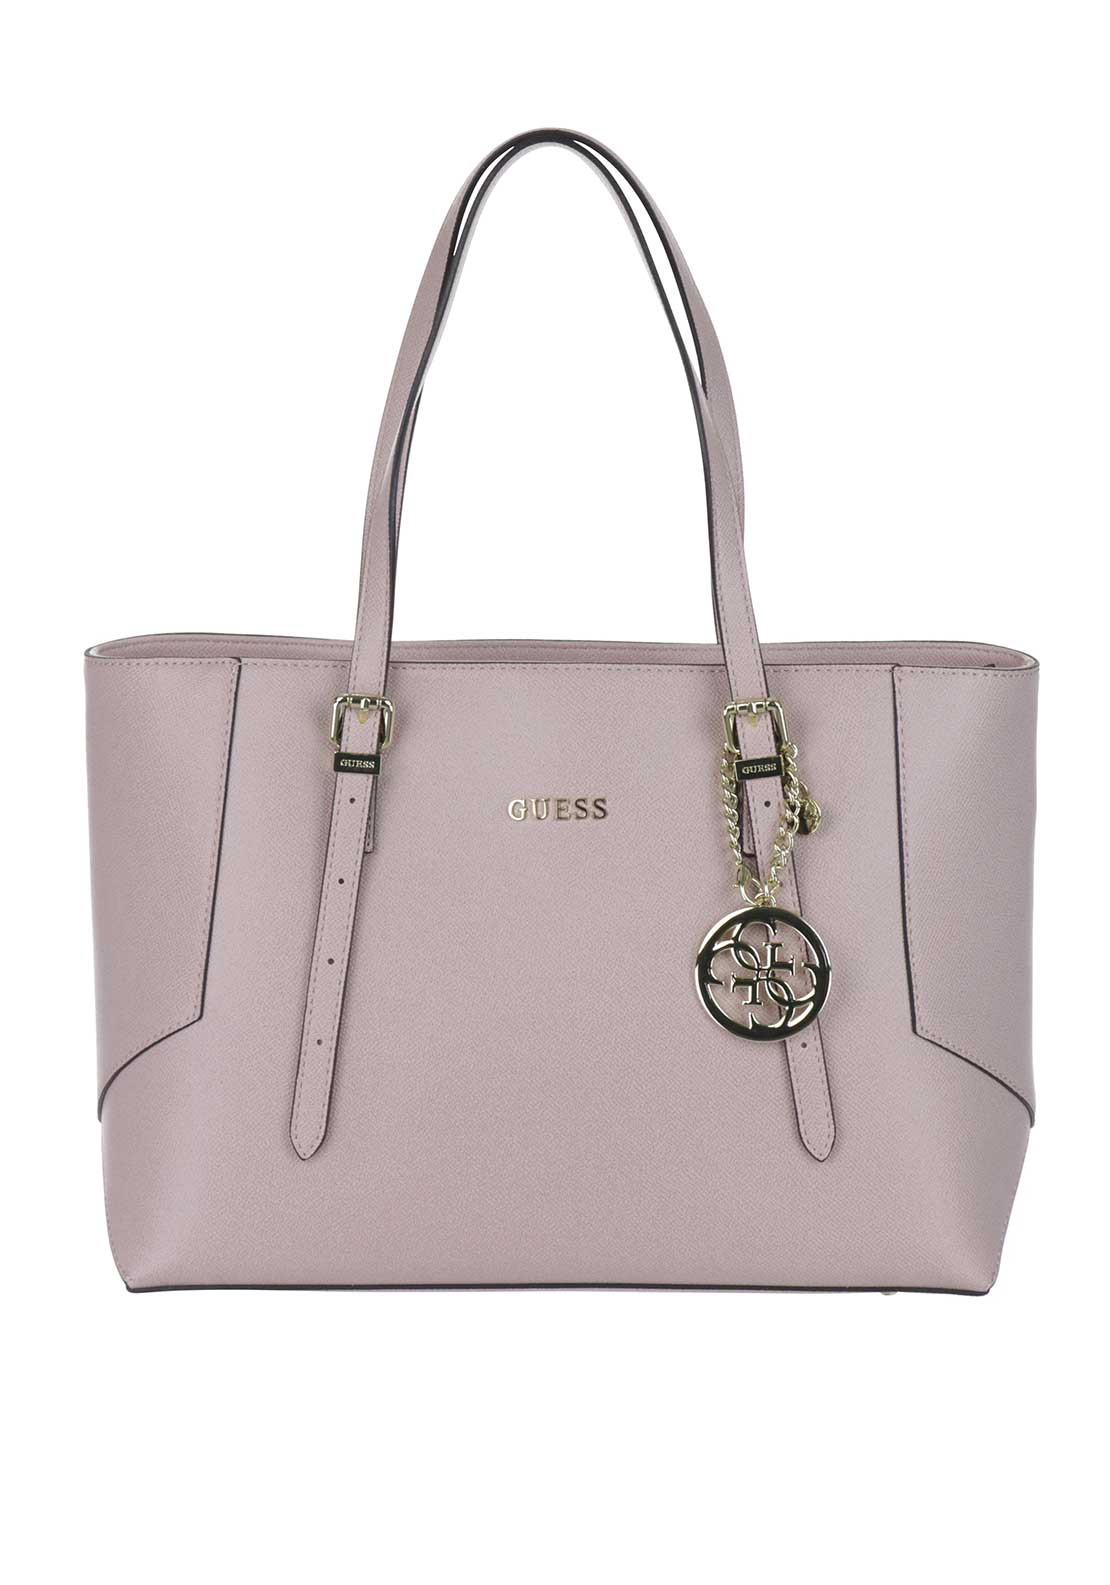 Guess Isabeau Shoulder Bag, Rose Pink